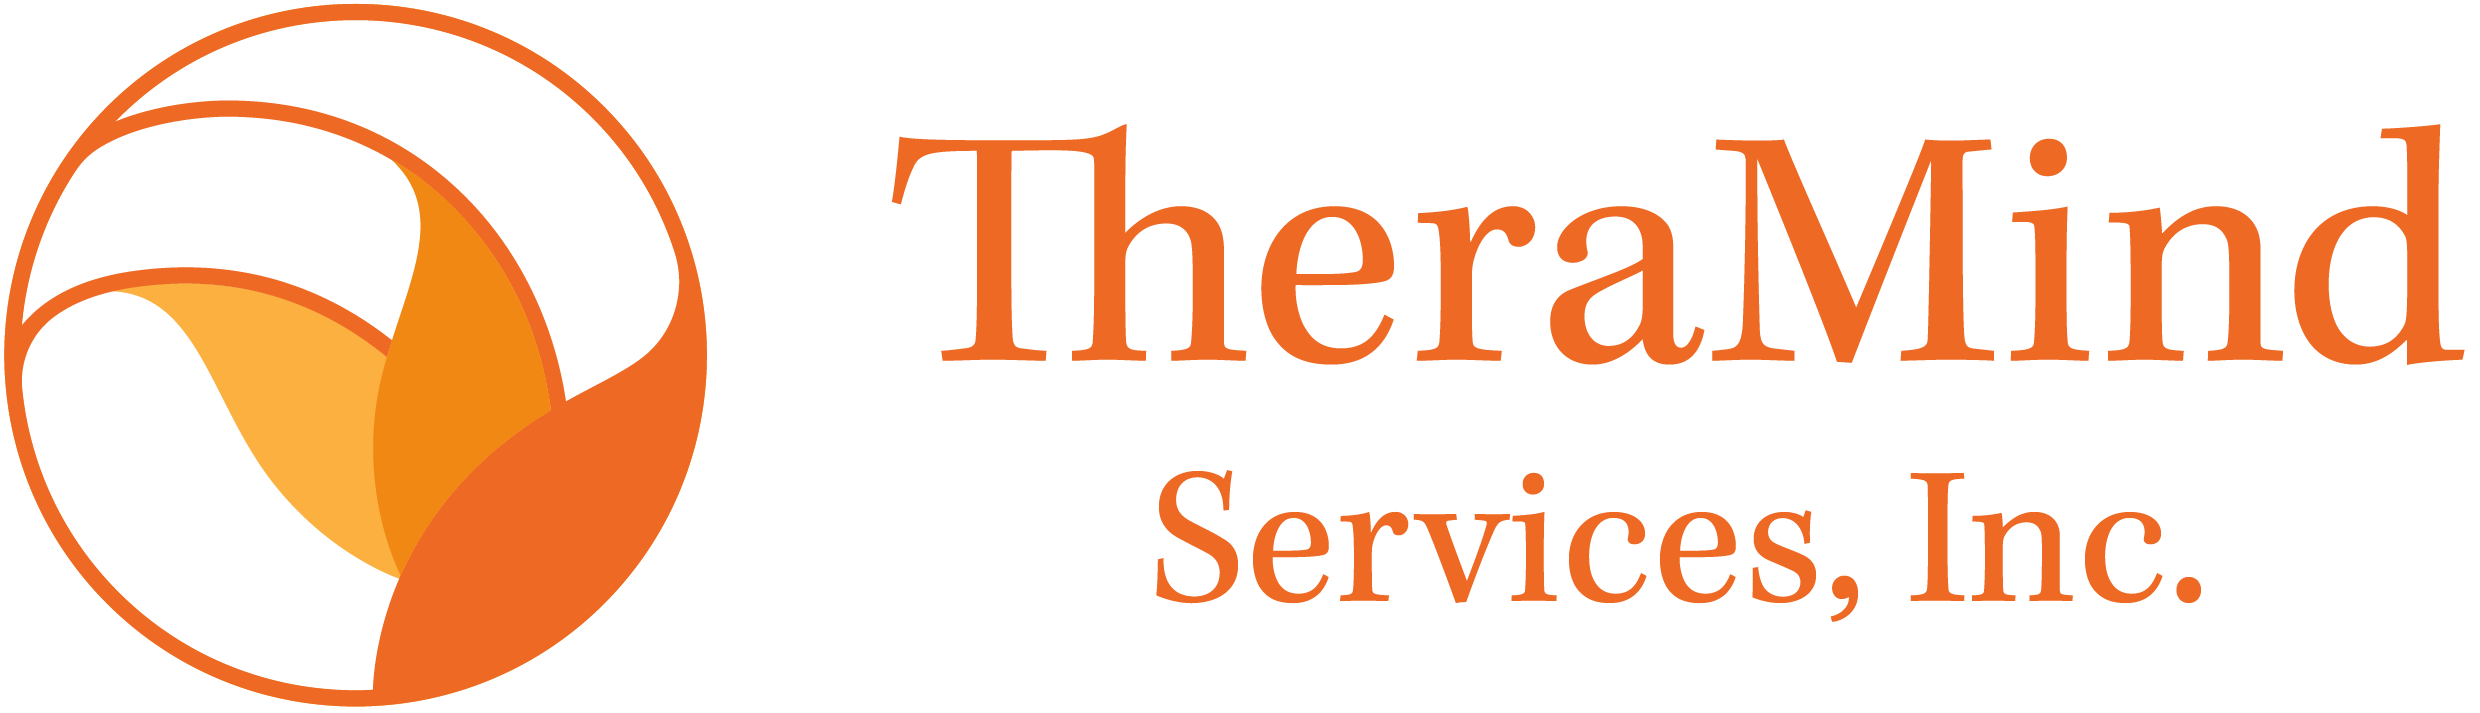 TheraMind Services, Inc.